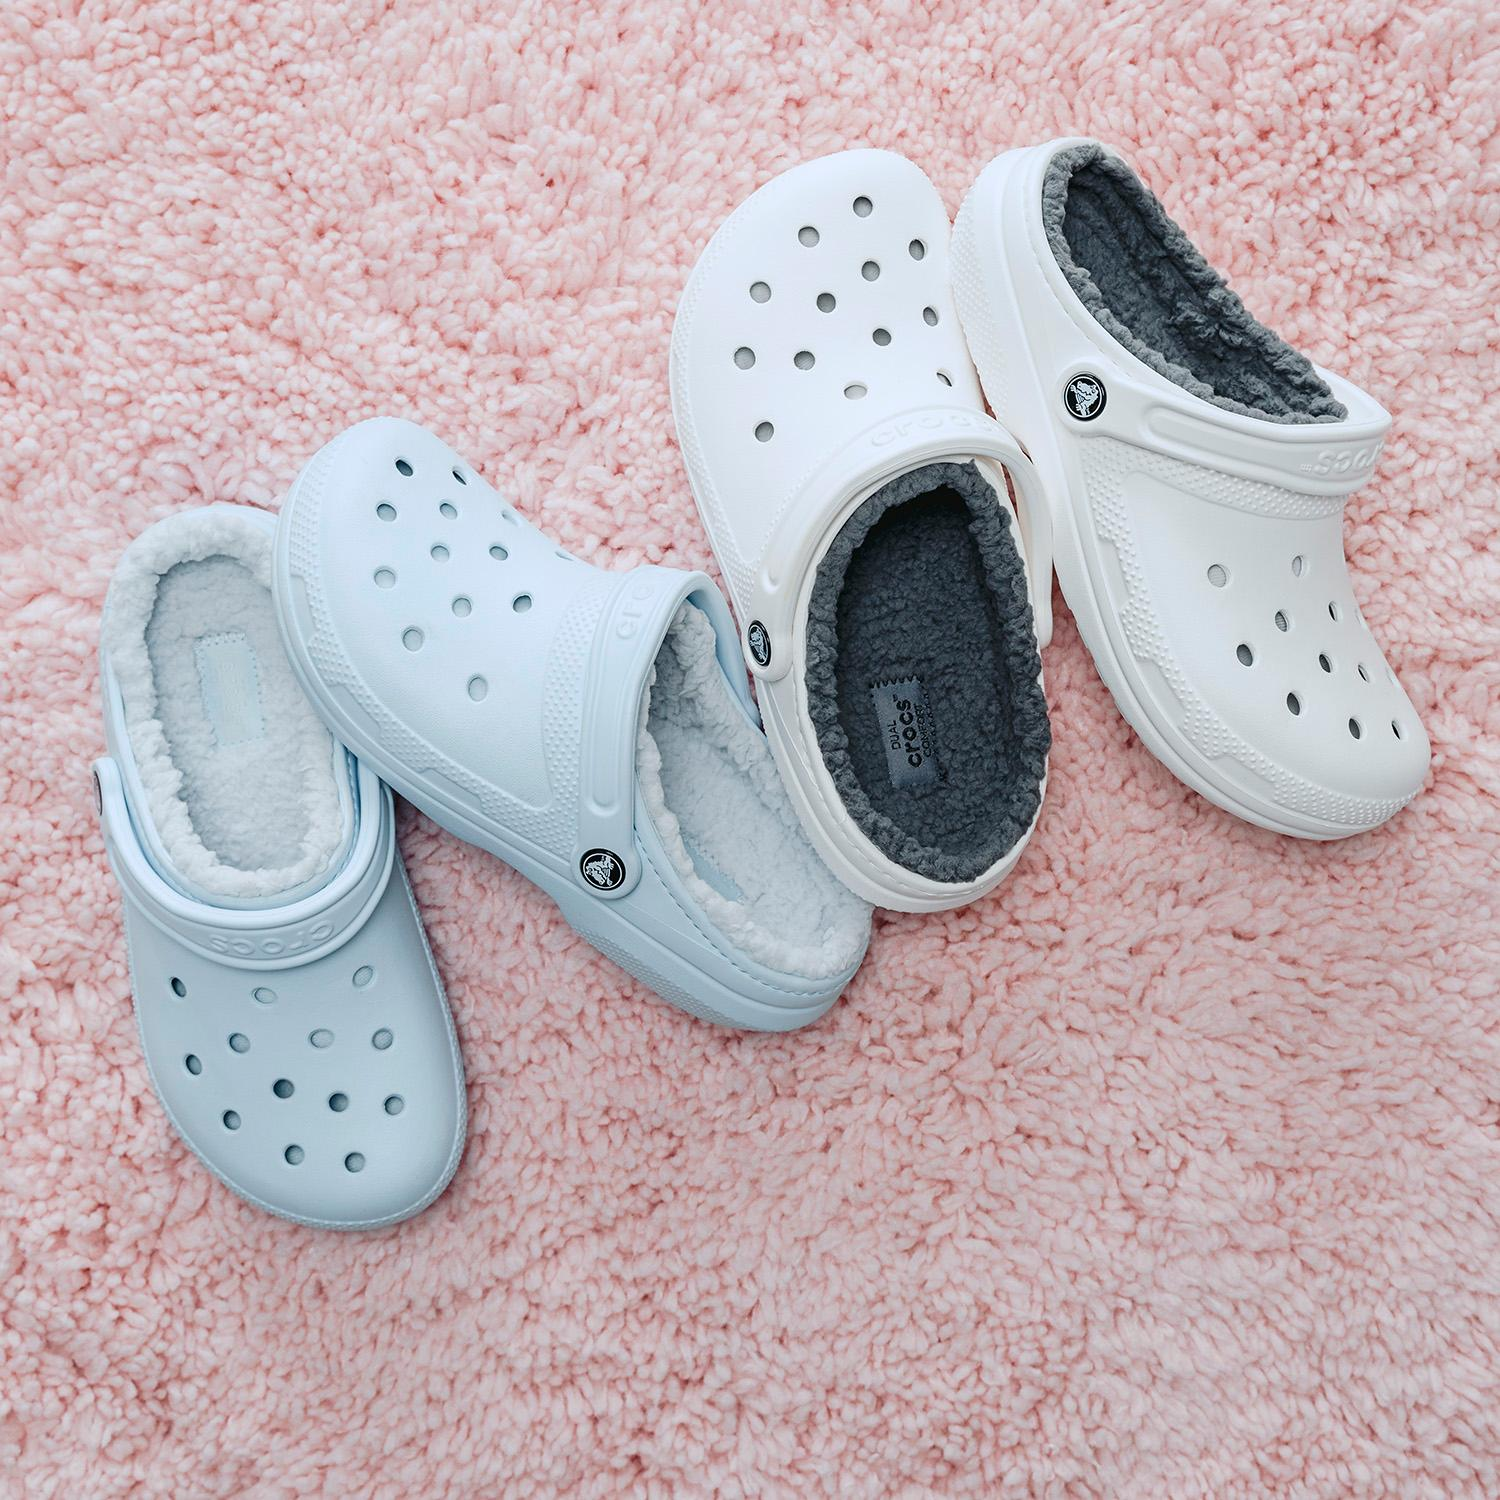 Two pair of lined crocks shown, one light blue the other white.